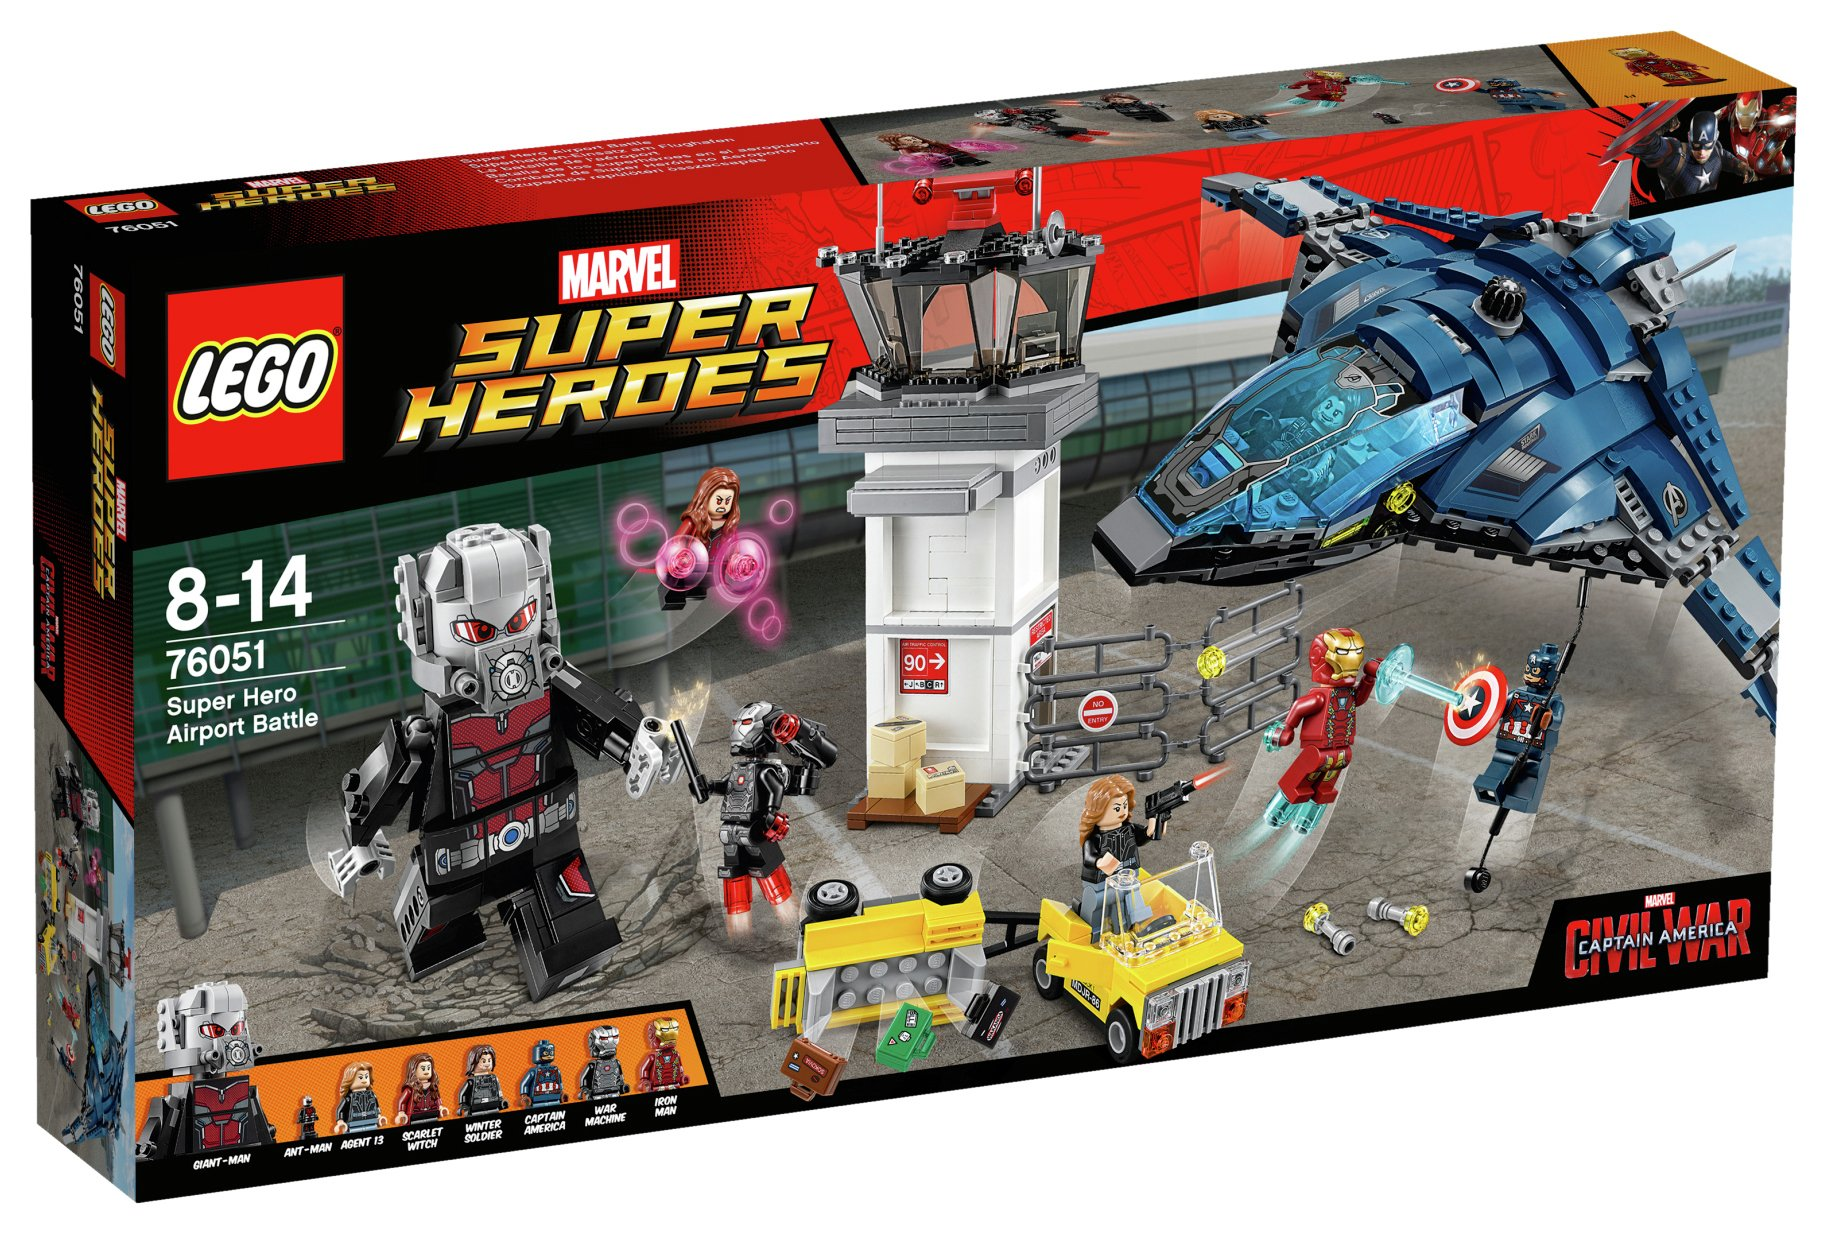 Image of LEGO - Super Heroes Captain America - 76051